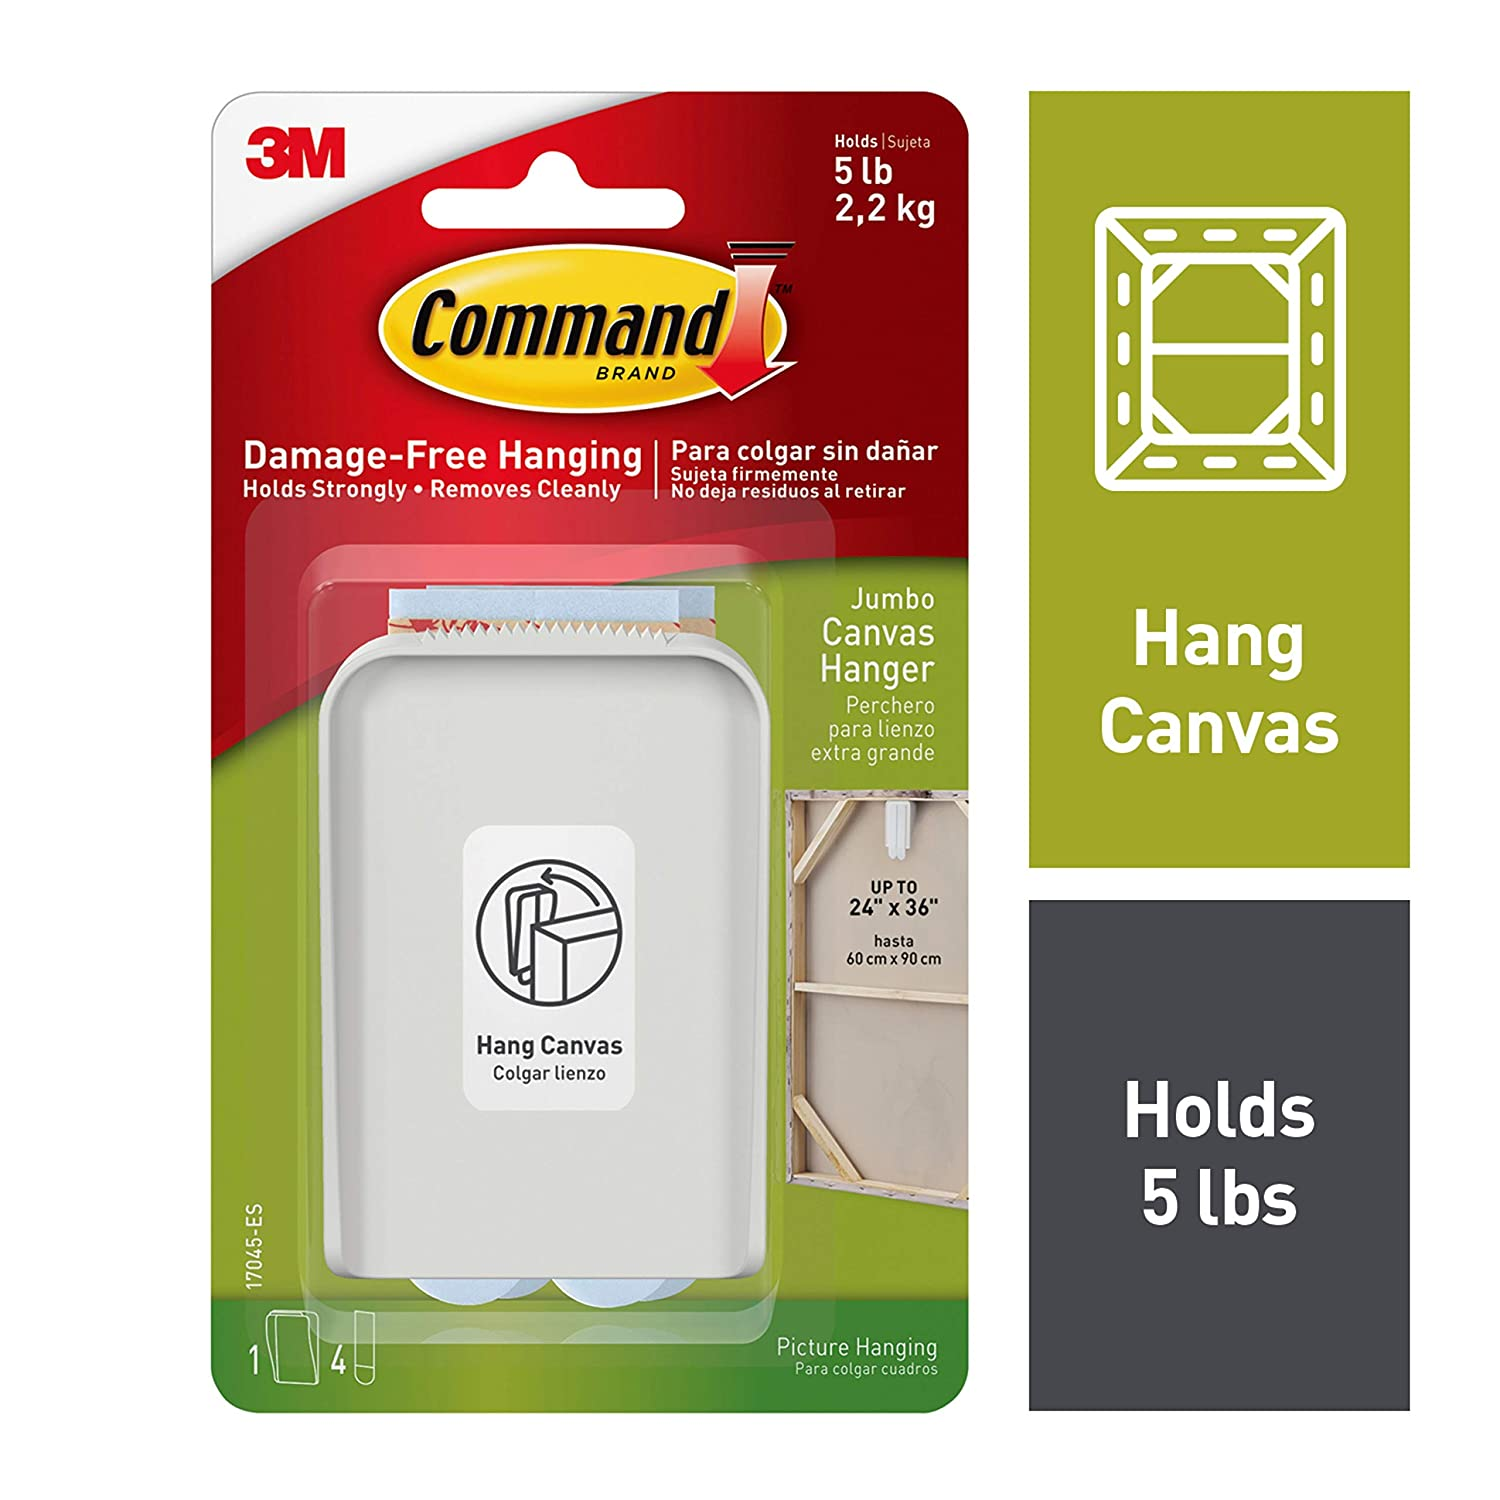 Command Jumbo Canvas Hanger, Holds 5 lbs, Indoor Use, Decorate Damage-Free, 1 hanger, 2 strips (17045-ES)